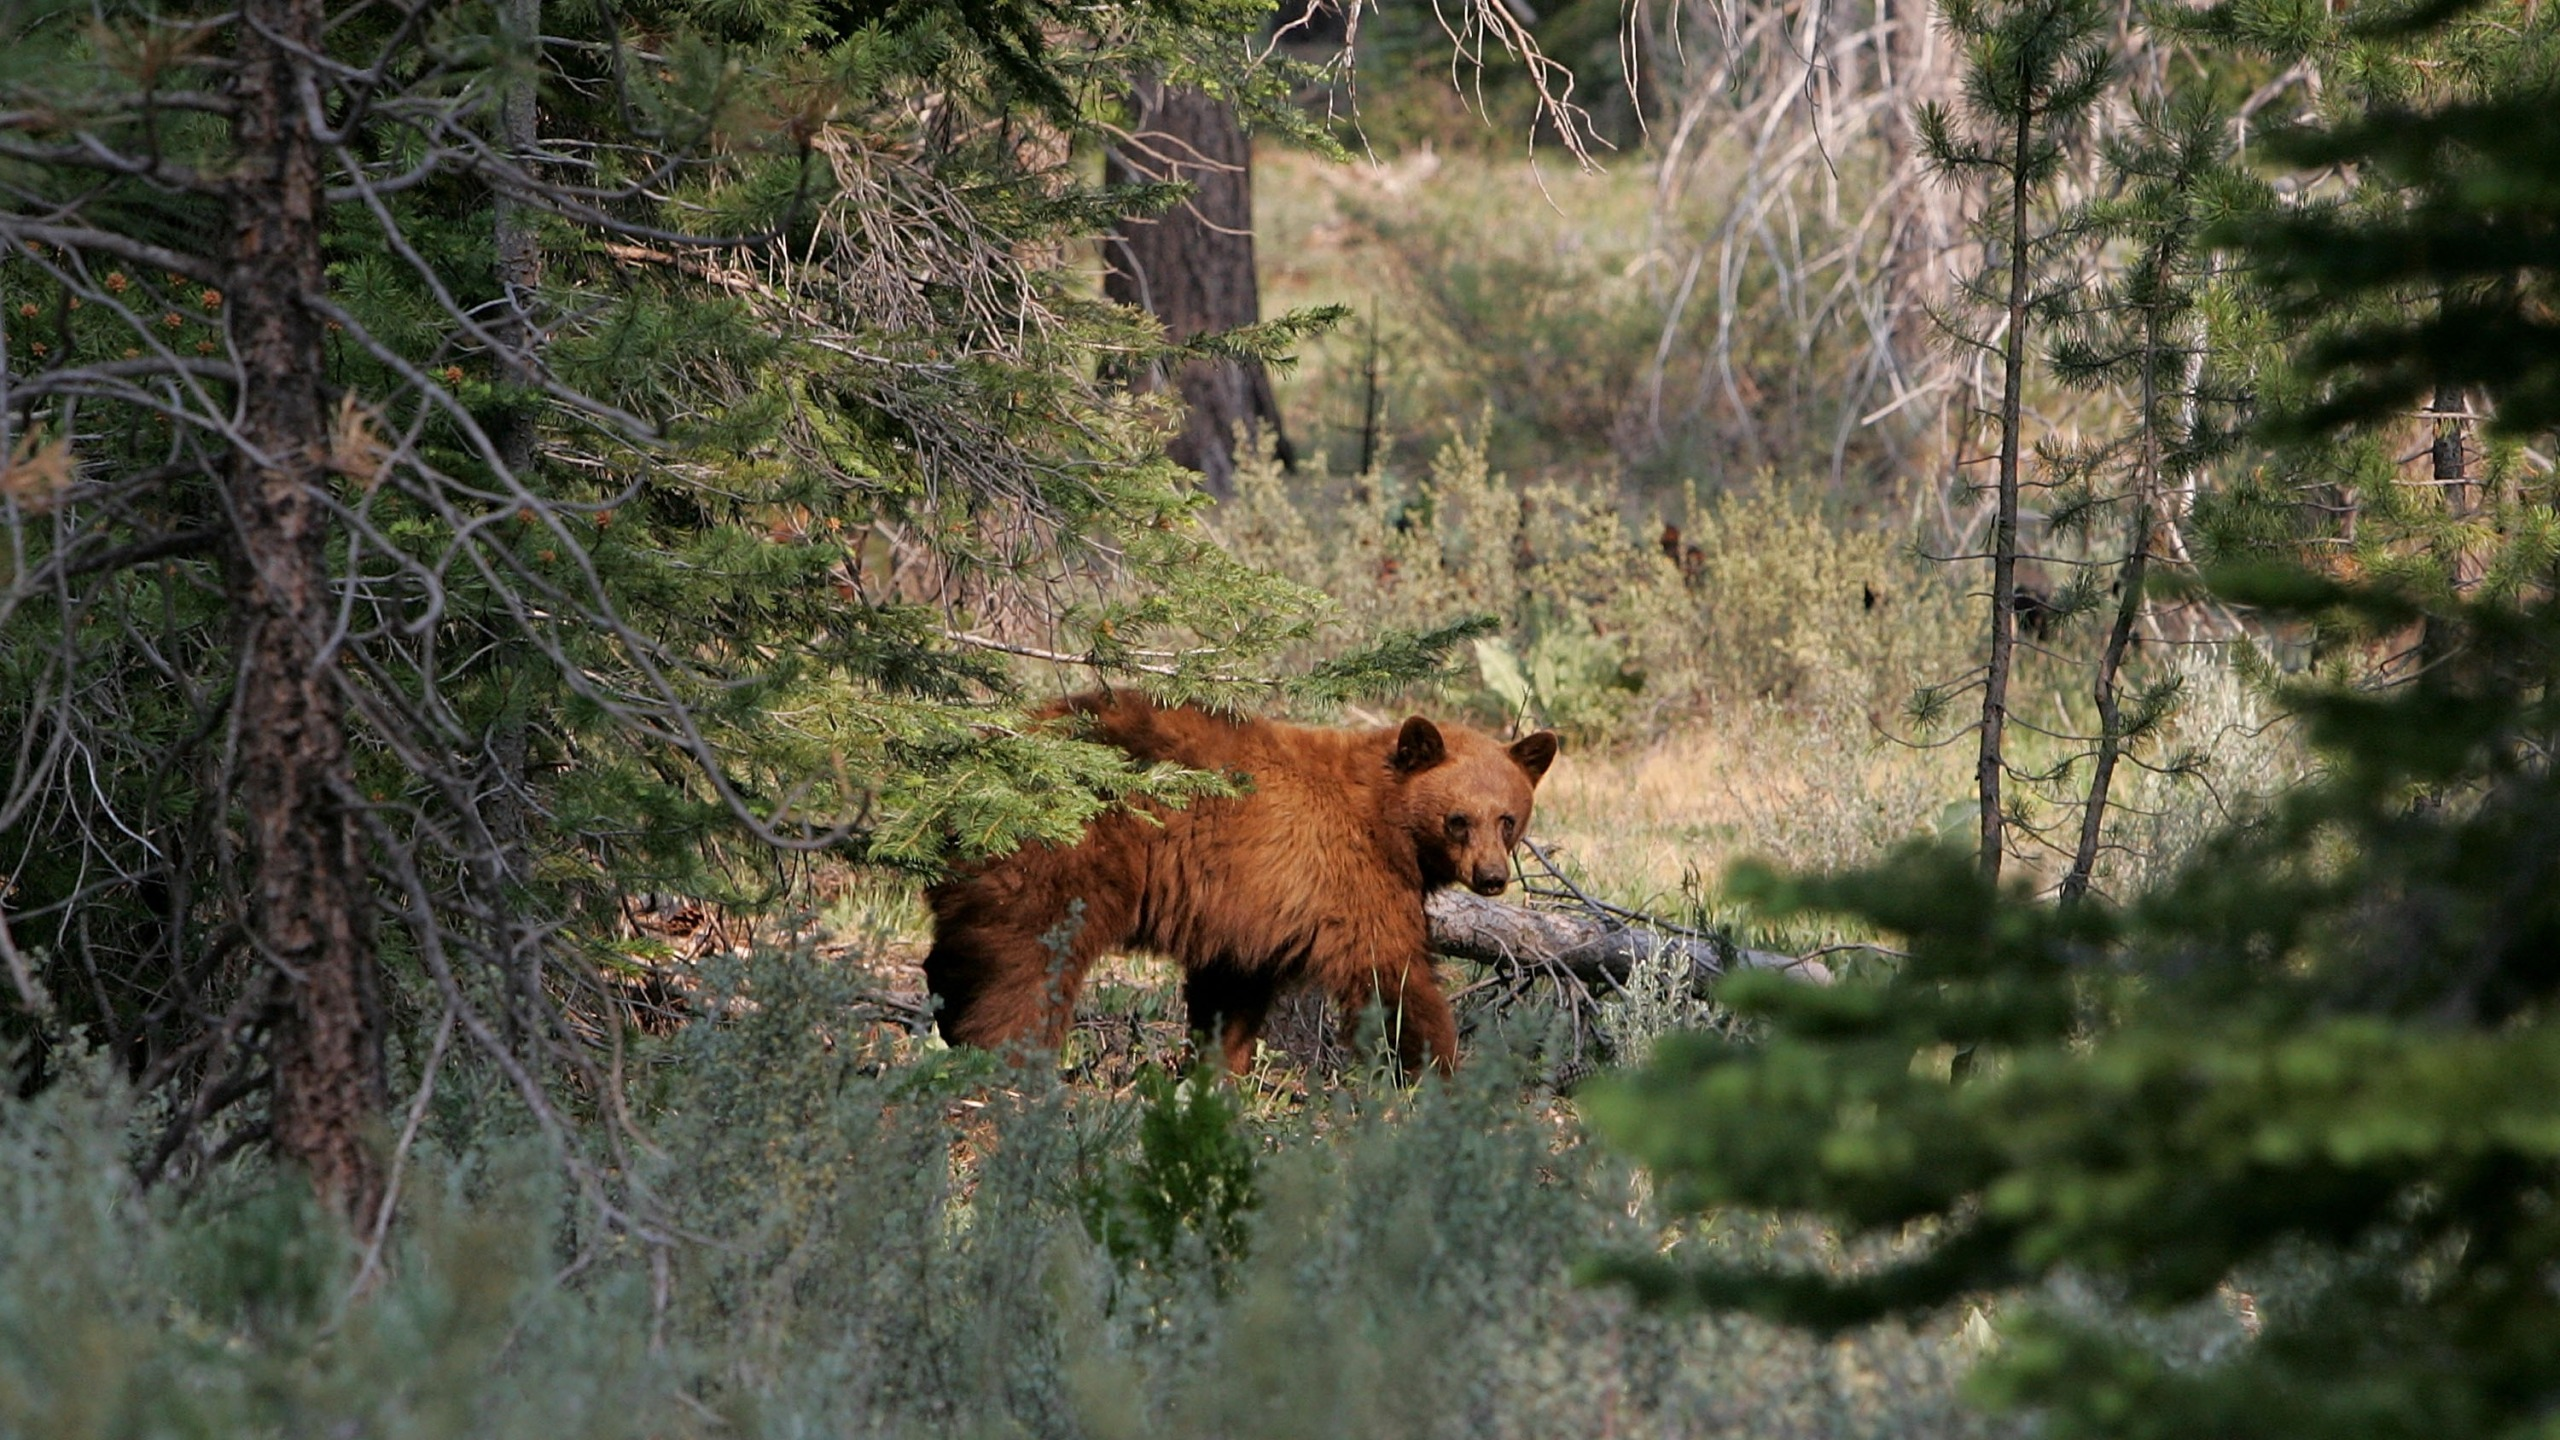 A black bear walks through a meadow after descending a tree near the Angora fire line on June 27, 2007, in South Lake Tahoe. (Justin Sullivan/Getty Images)